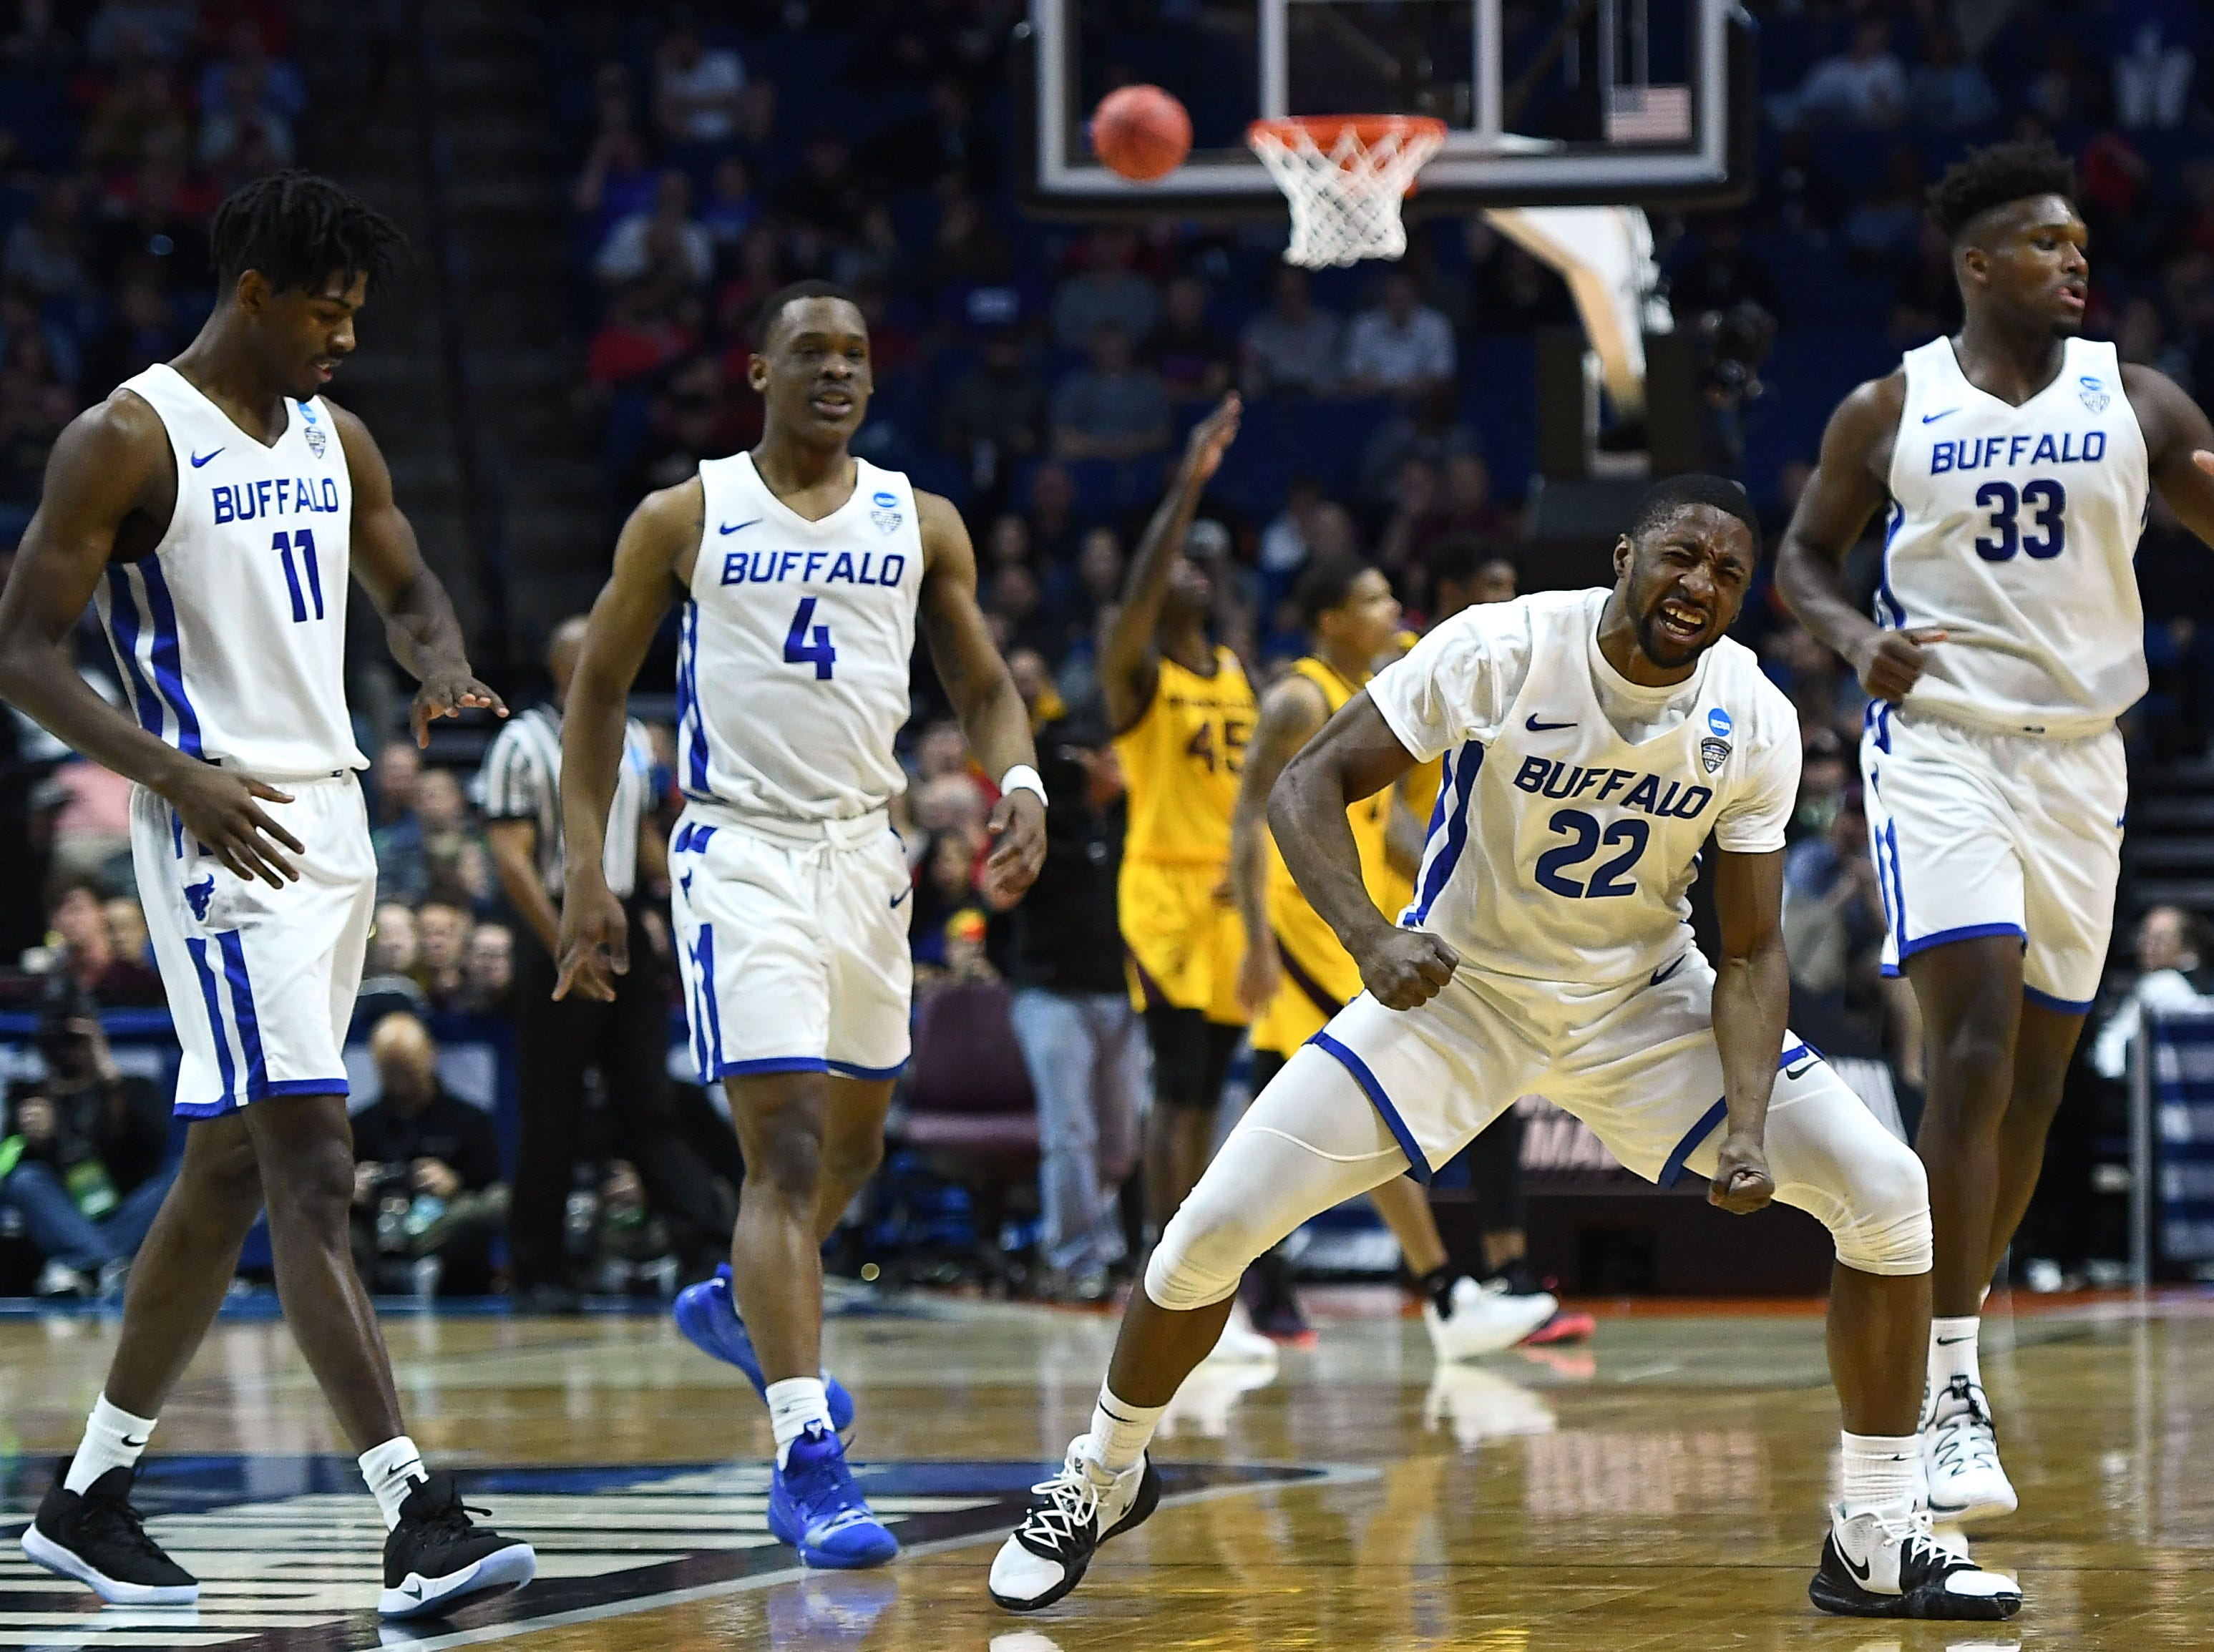 TULSA, OKLAHOMA - MARCH 22:  Dontay Caruthers #22 of the Buffalo Bulls celebrates around teammates Jeenathan Williams #11, Davonta Jordan #4, and Nick Perkins #33 during the first half of the first round game of the 2019 NCAA Men's Basketball Tournament against the Arizona State Sun Devils at BOK Center on March 22, 2019 in Tulsa, Oklahoma. (Photo by Stacy Revere/Getty Images)